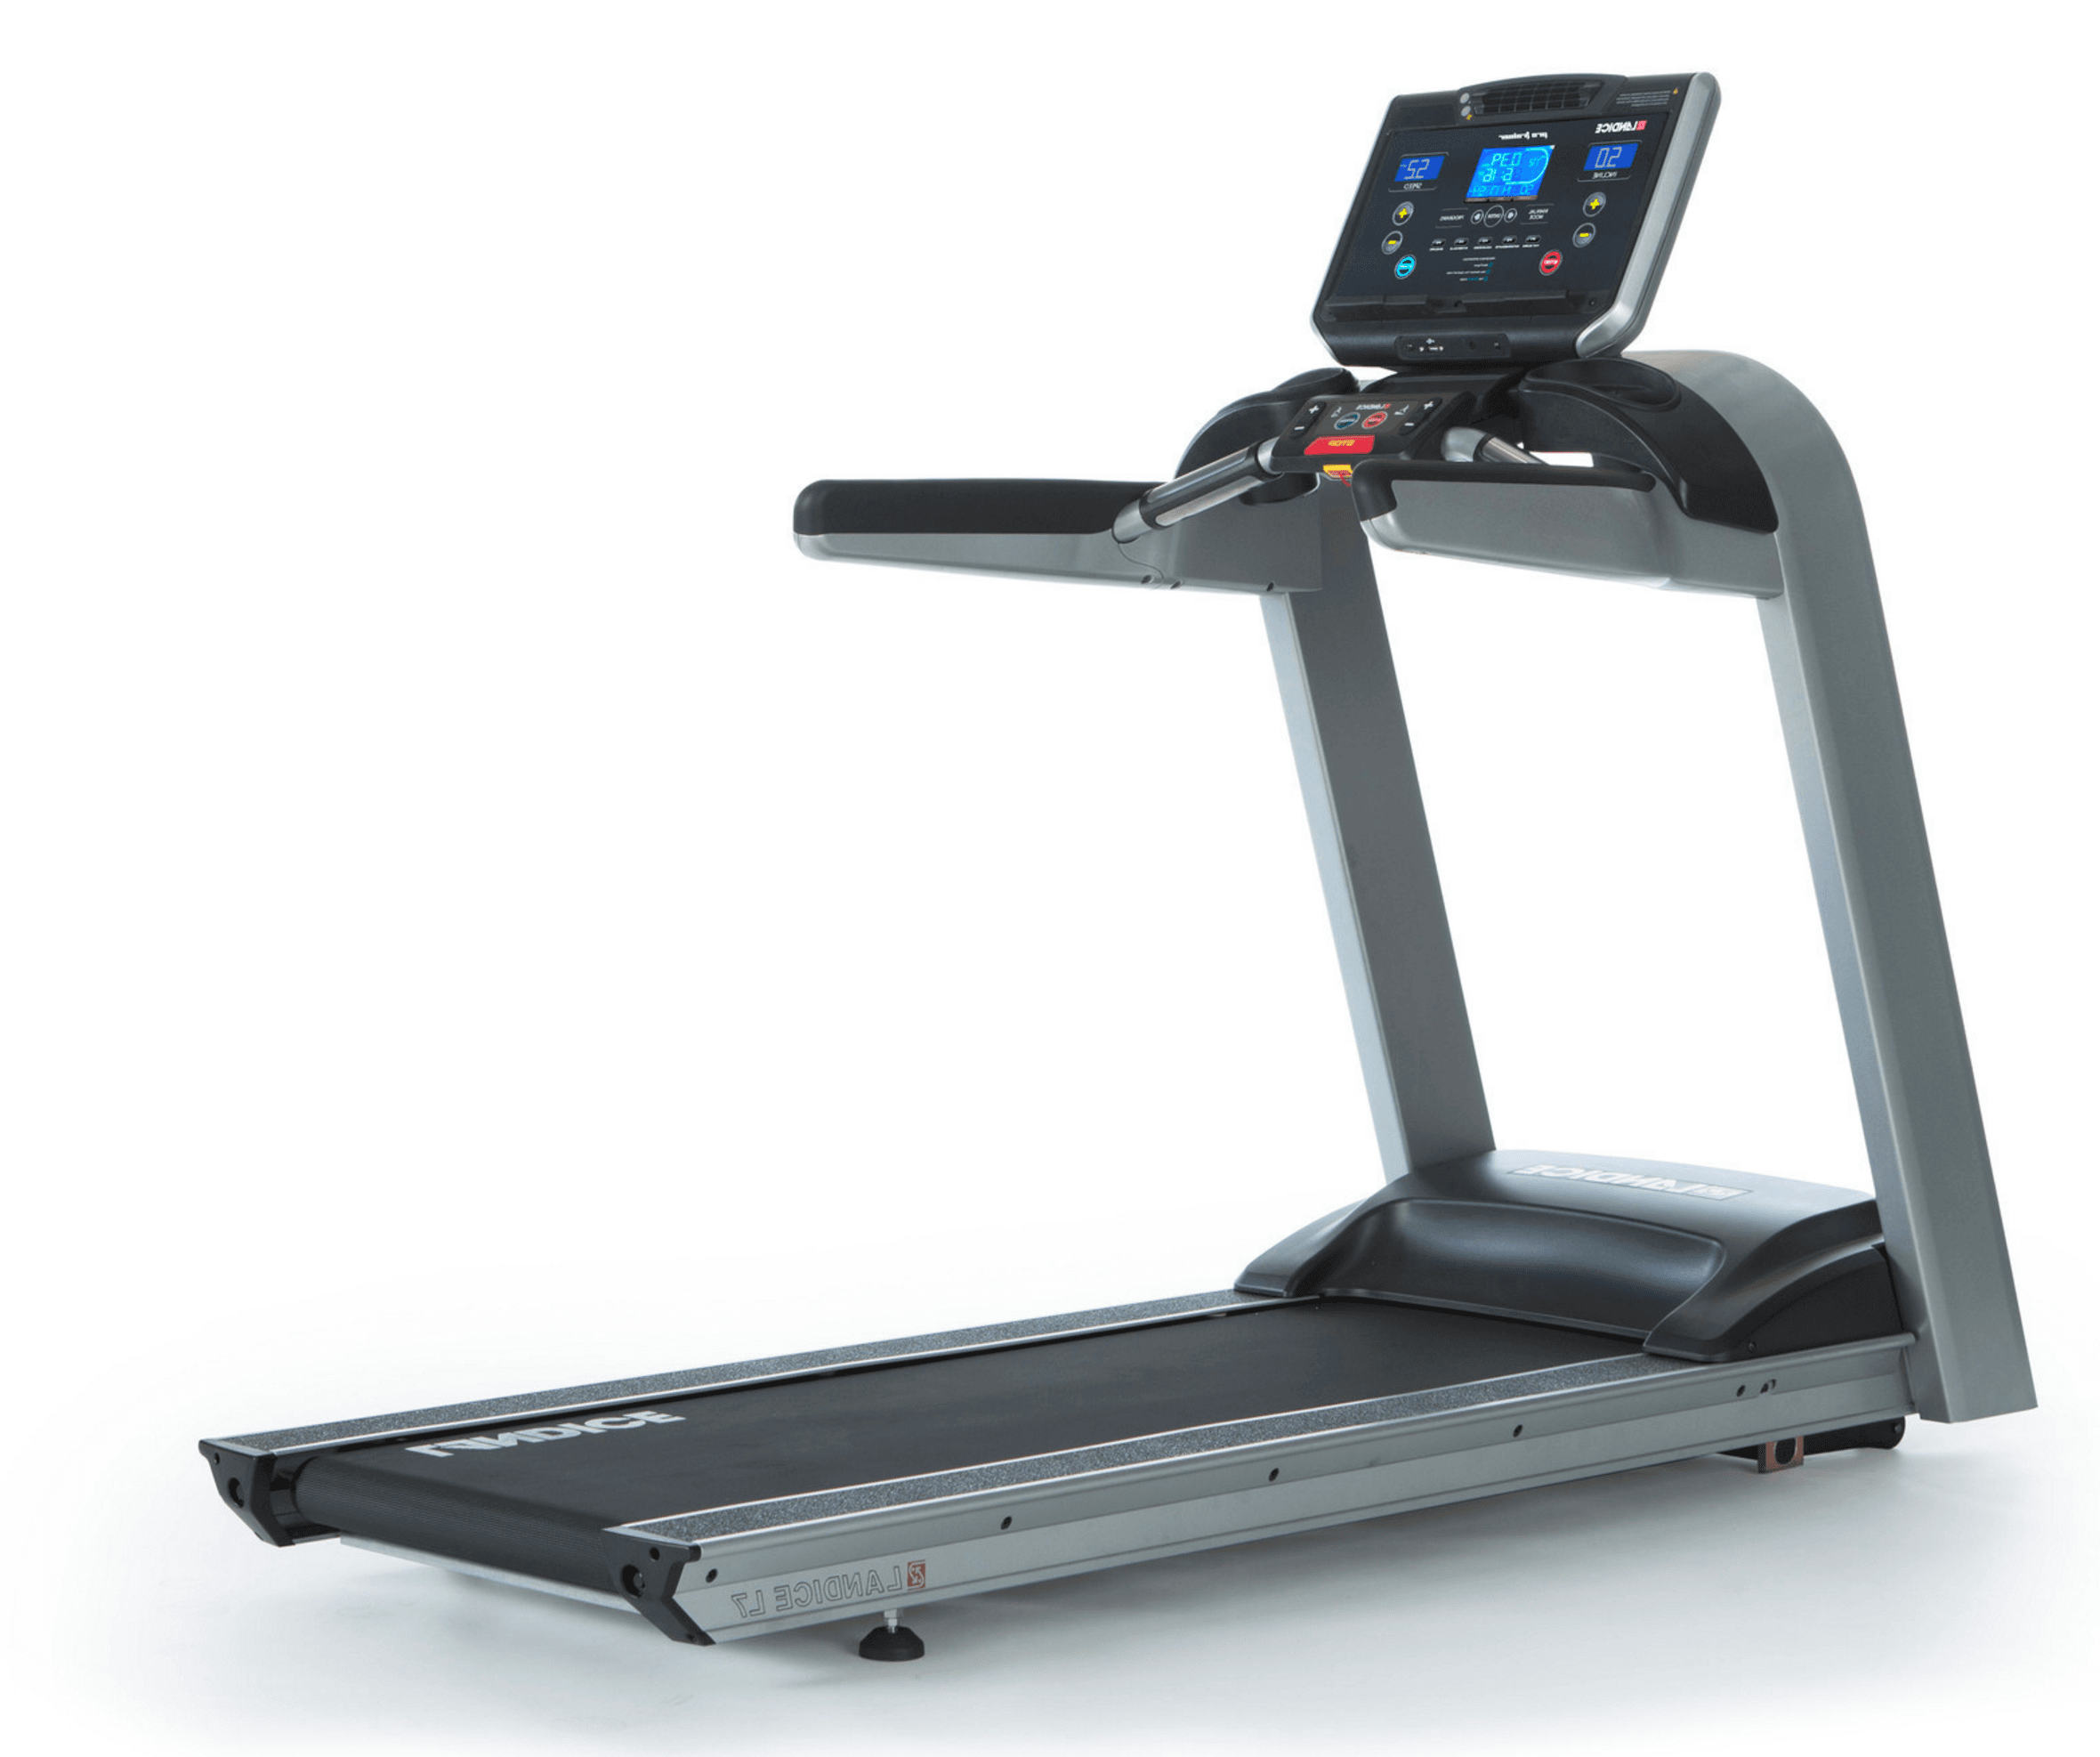 Landice L7 Treadmill Dimensions: Landice L7 LTD Review 2018